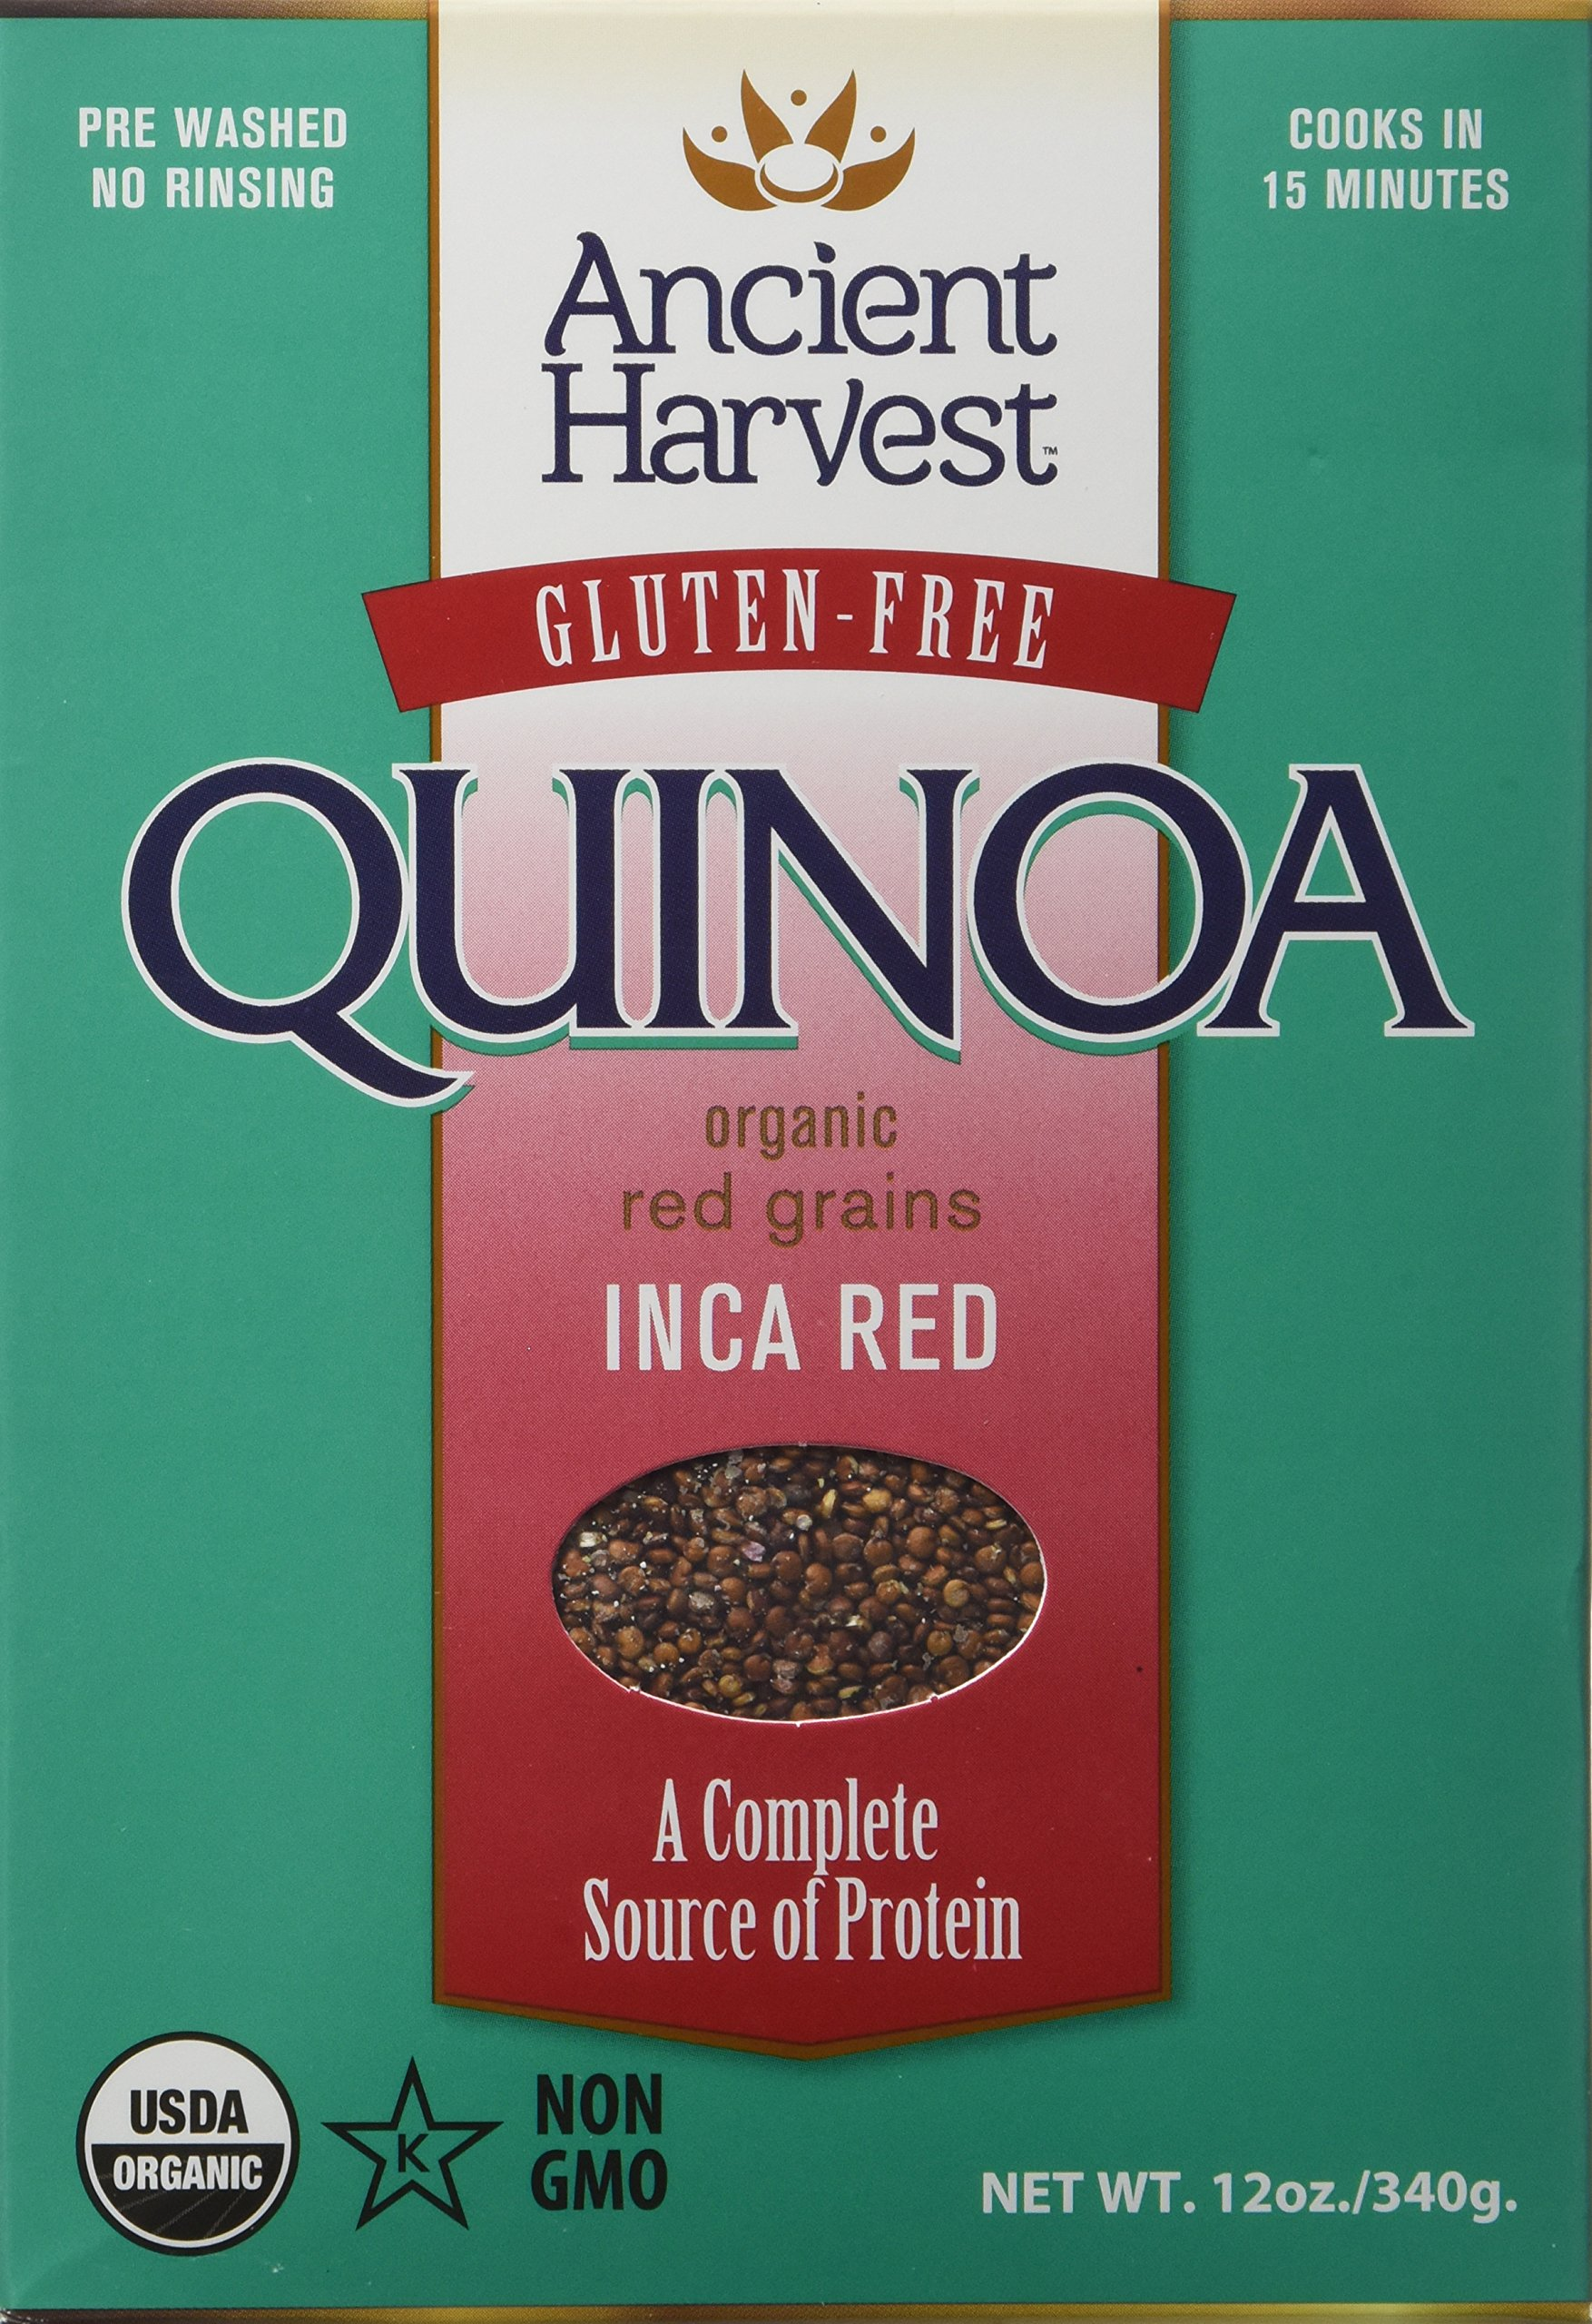 Ancient Harvest Quinoa Inca Red Wfgf Org (Pack of 2)